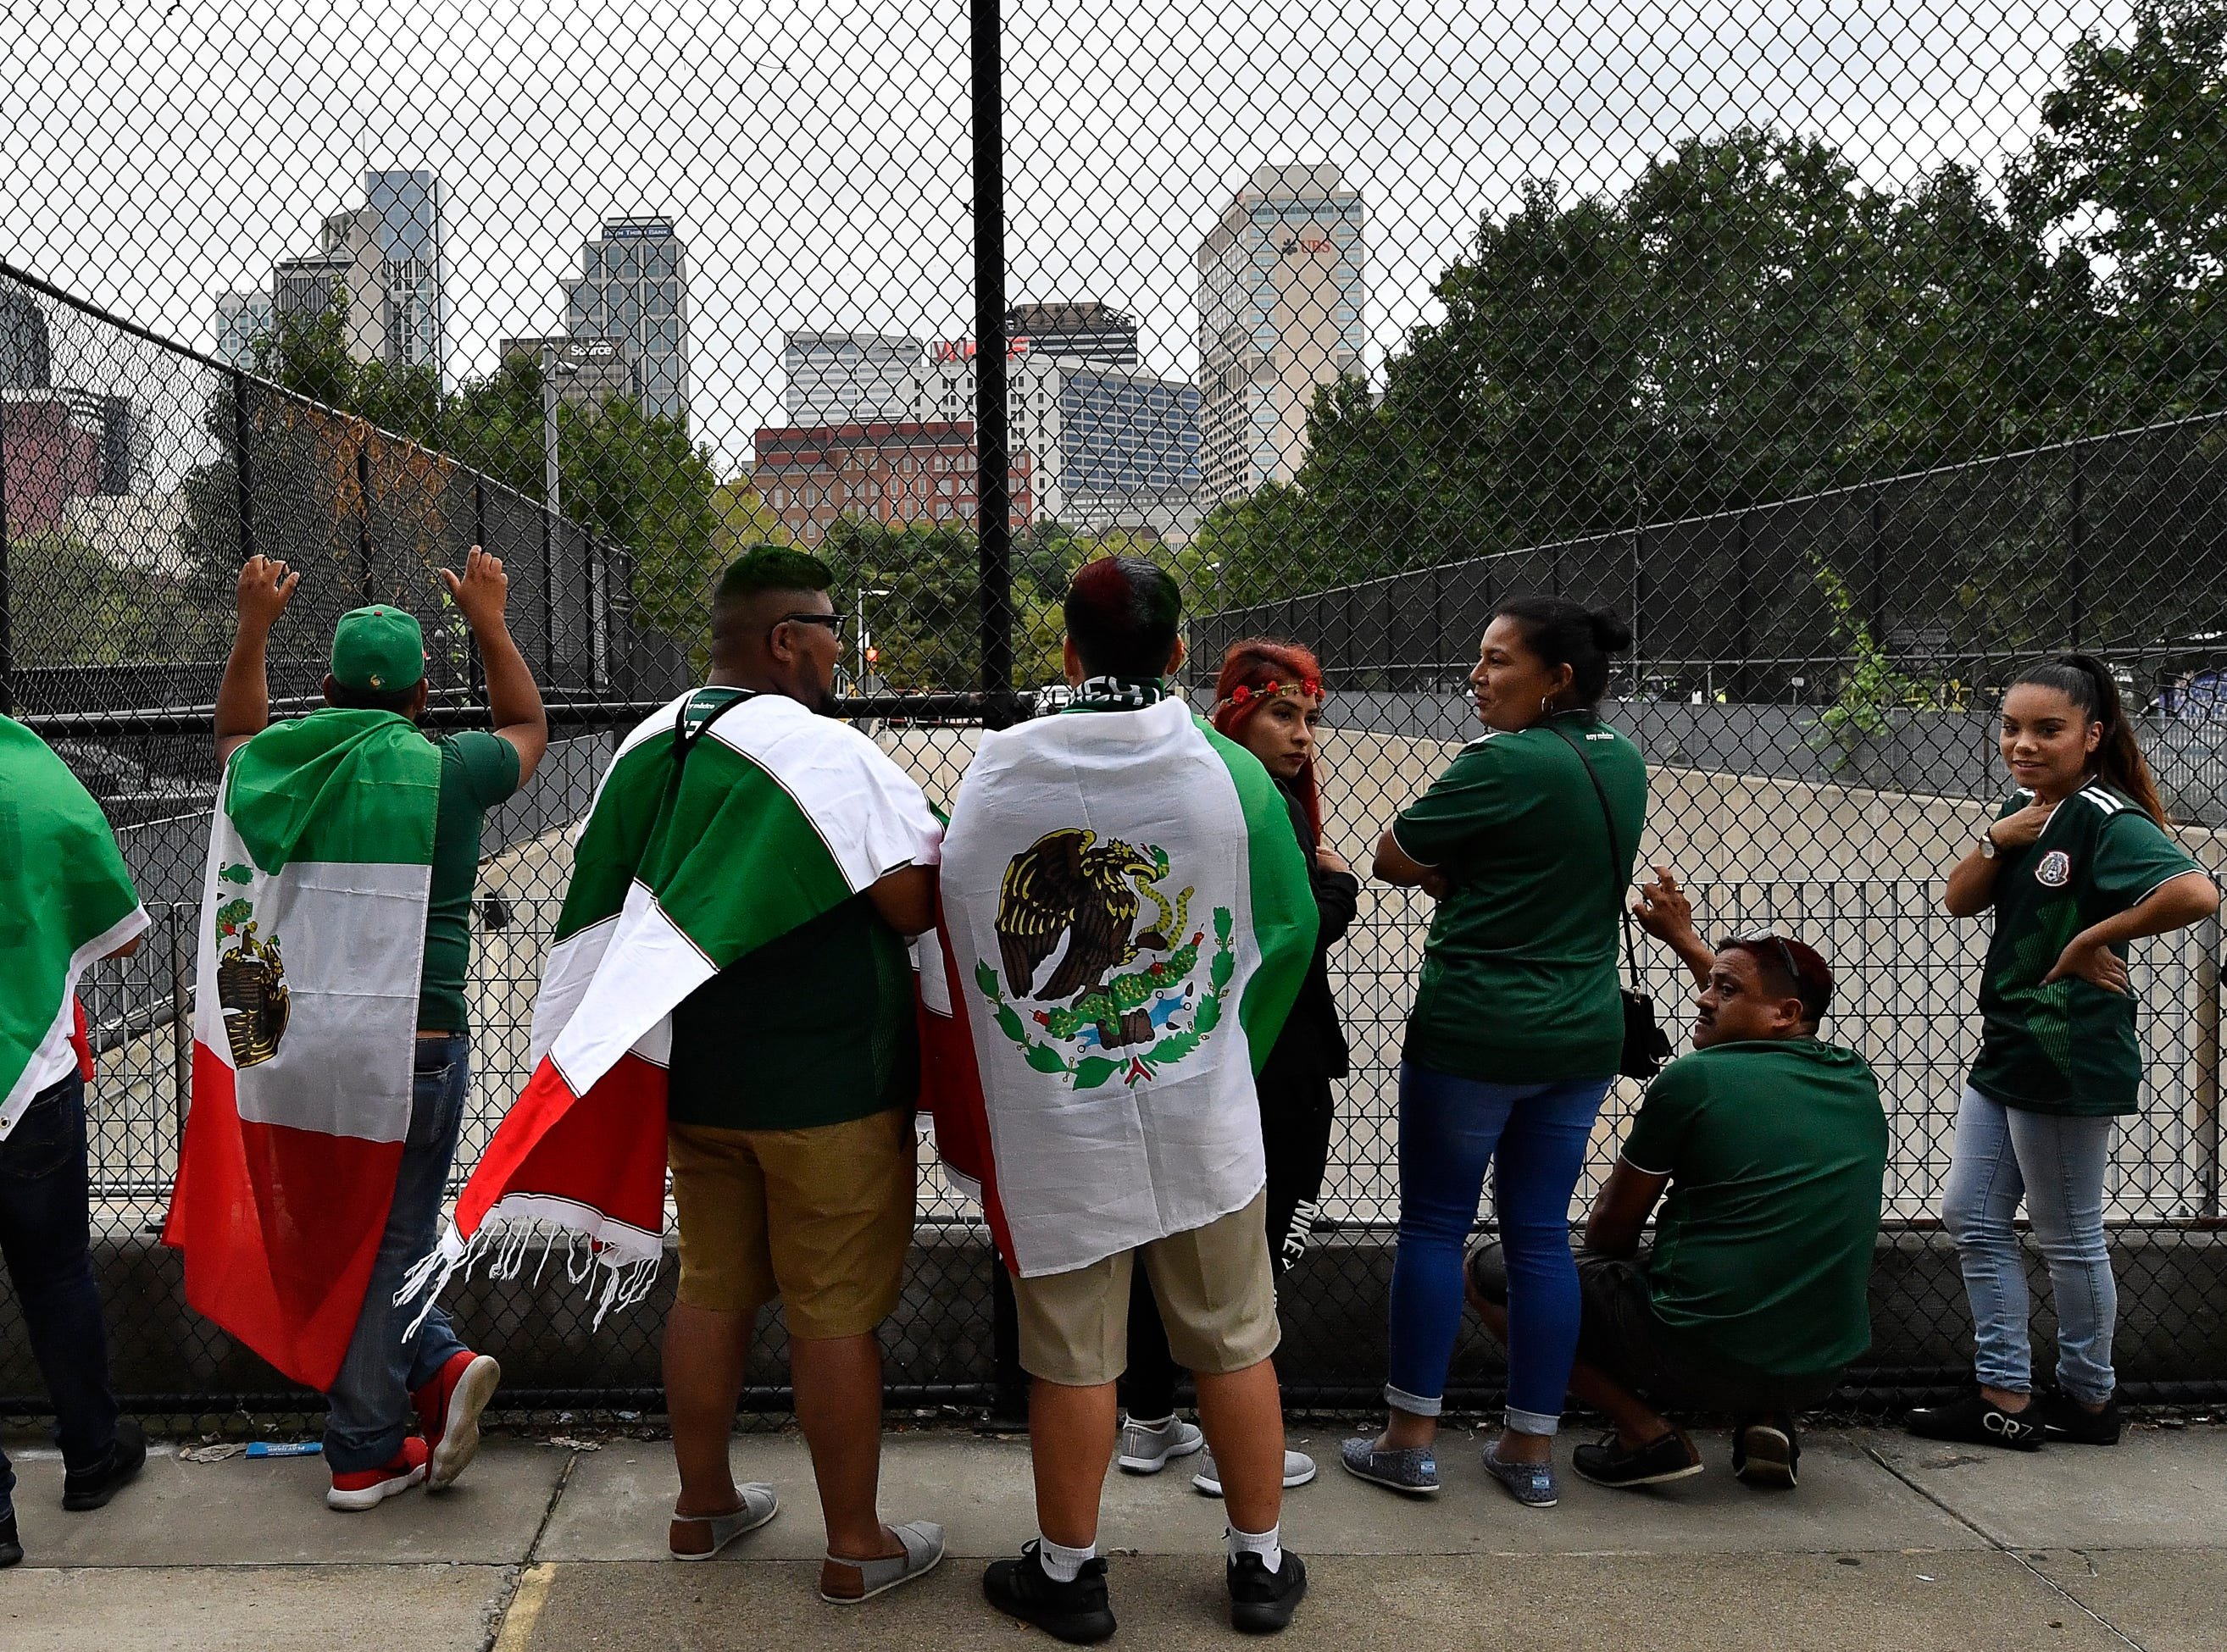 Mexican soccer fans wait for their team to arrive at Nissan Stadium before the soccer match between USA and MexicoTuesday, Sept. 11, 2018, in Nashville, Tenn.